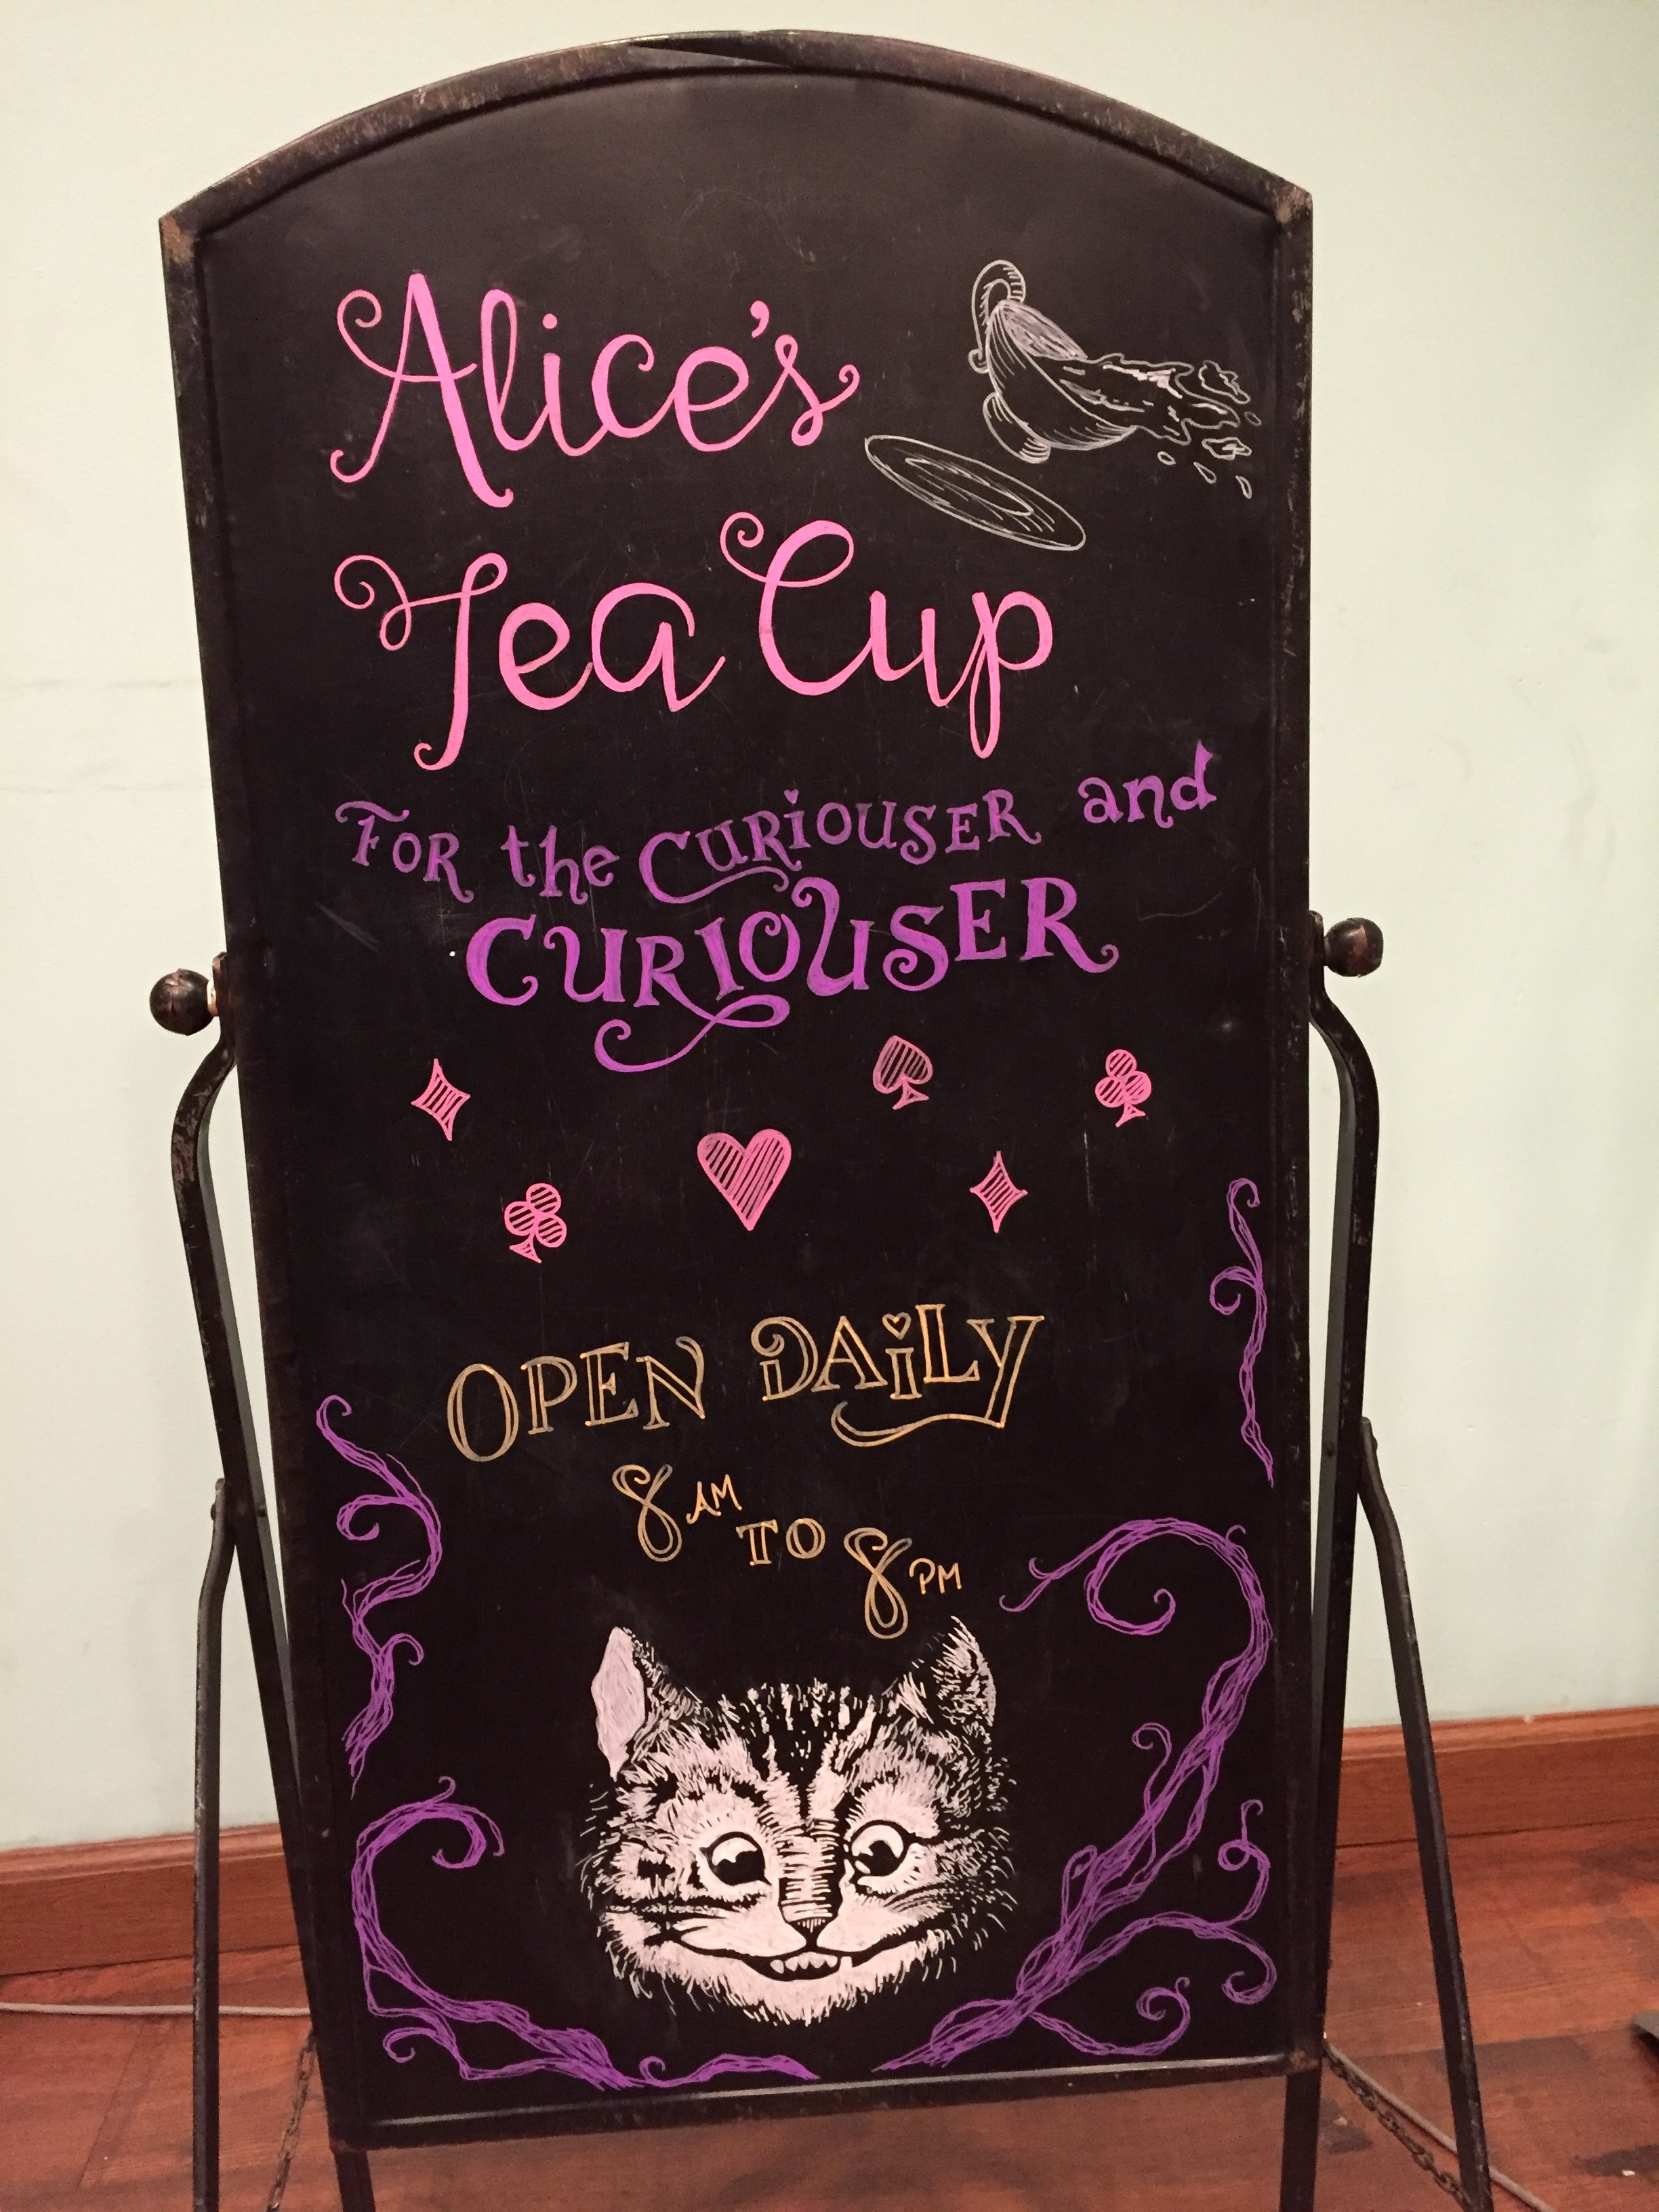 Copy of Alice's Tea Cup